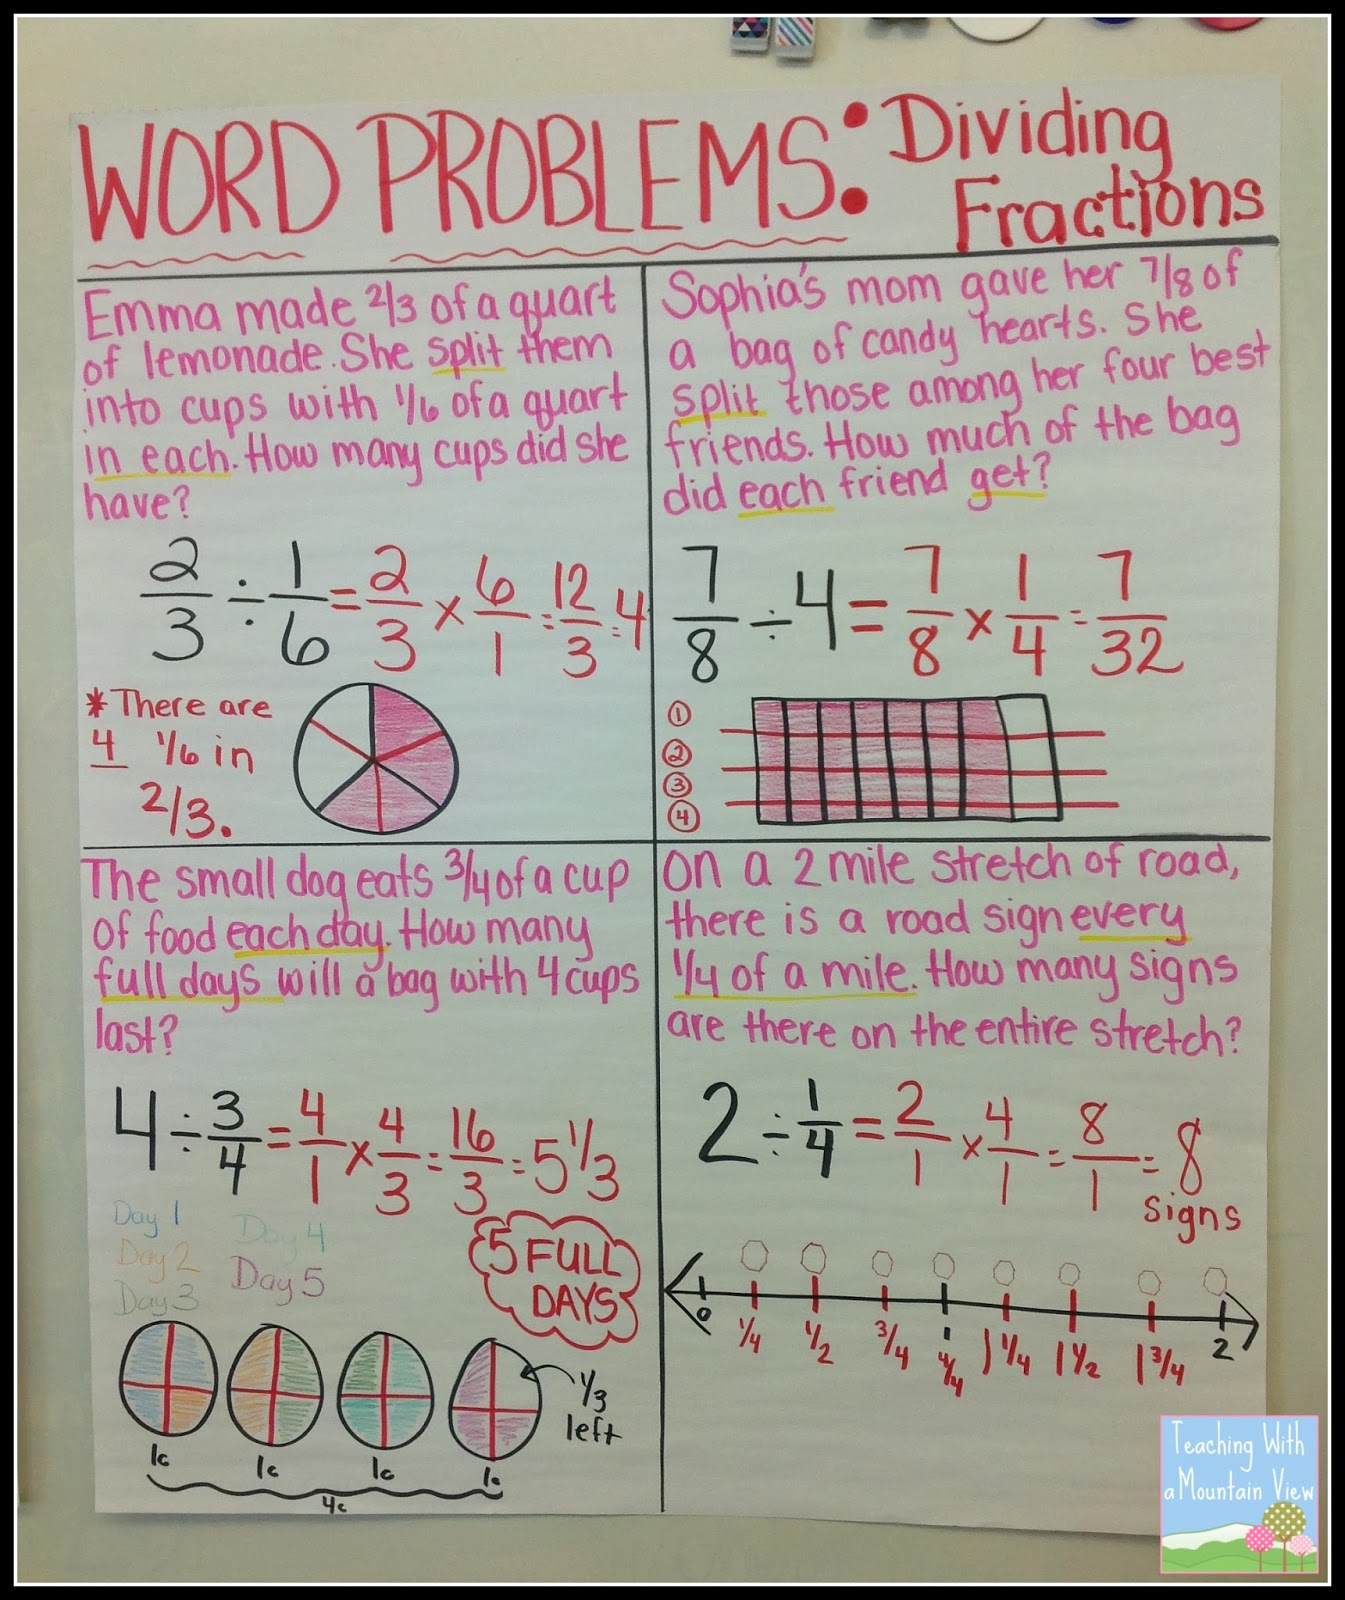 Worksheet Word Problems For Fractions teaching with a mountain view making sense of multiplying we dissected these word problems underlined key phrases that they felt helped them to know what type problem were reading and